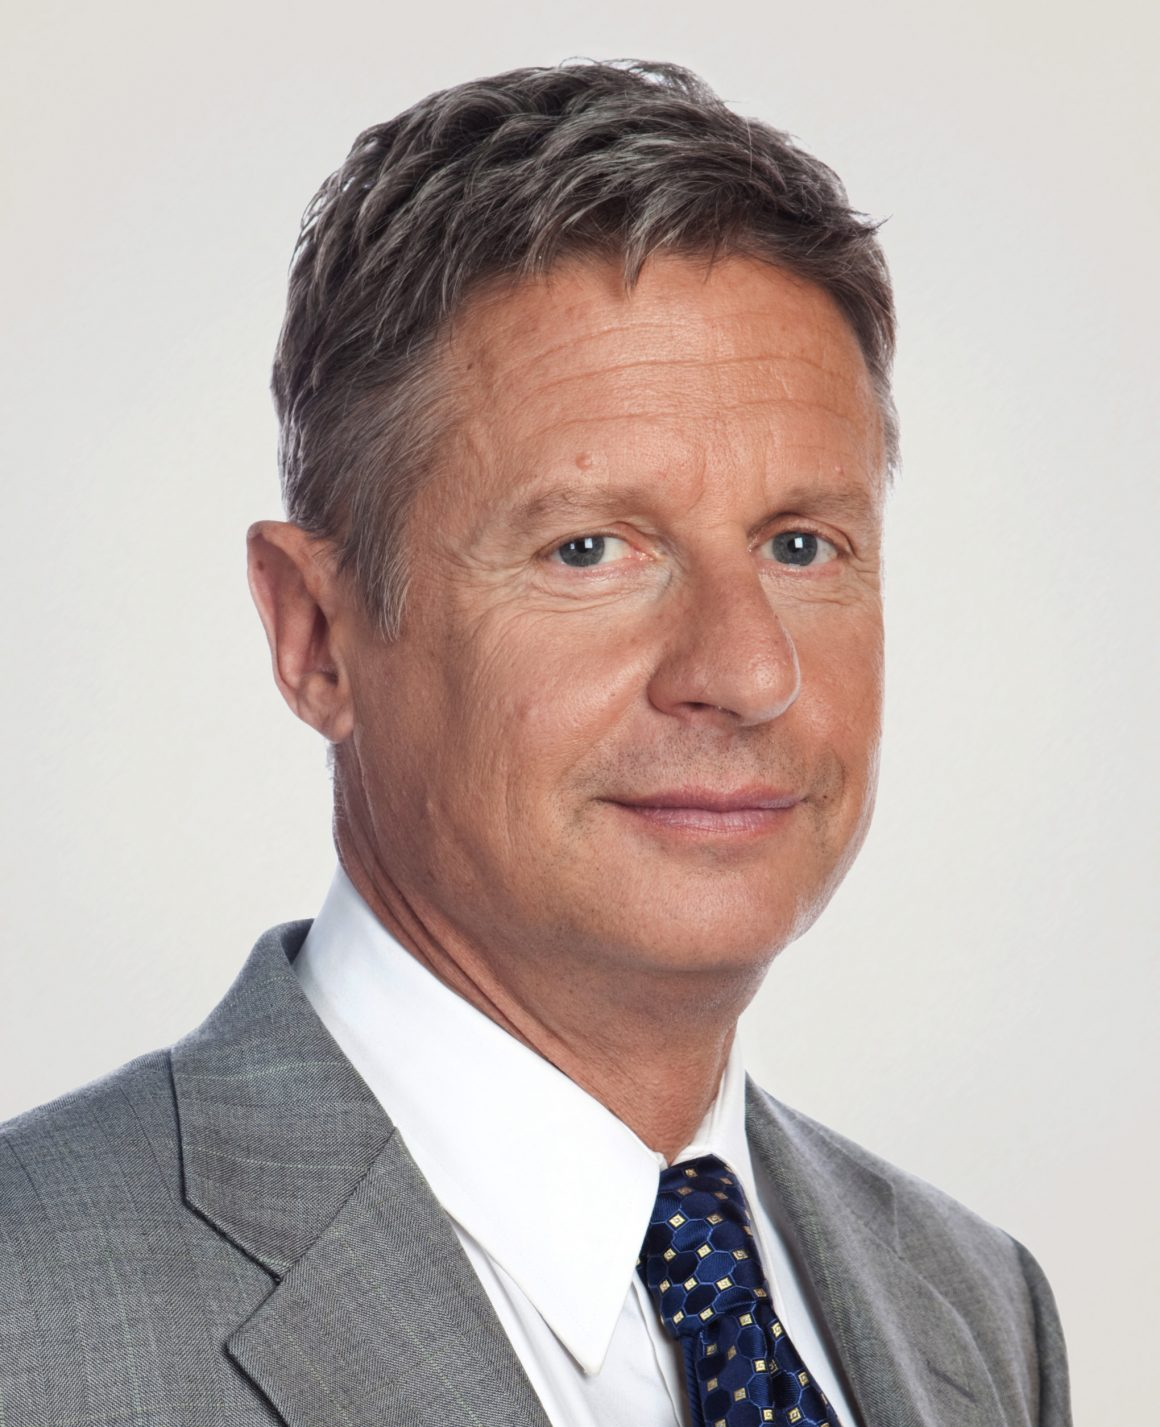 Former New Mexico governor Gary Johnson is the Libertarian Party's 2016 presidential candidate. He is running with William Weld. (Ron Hill Imagery)